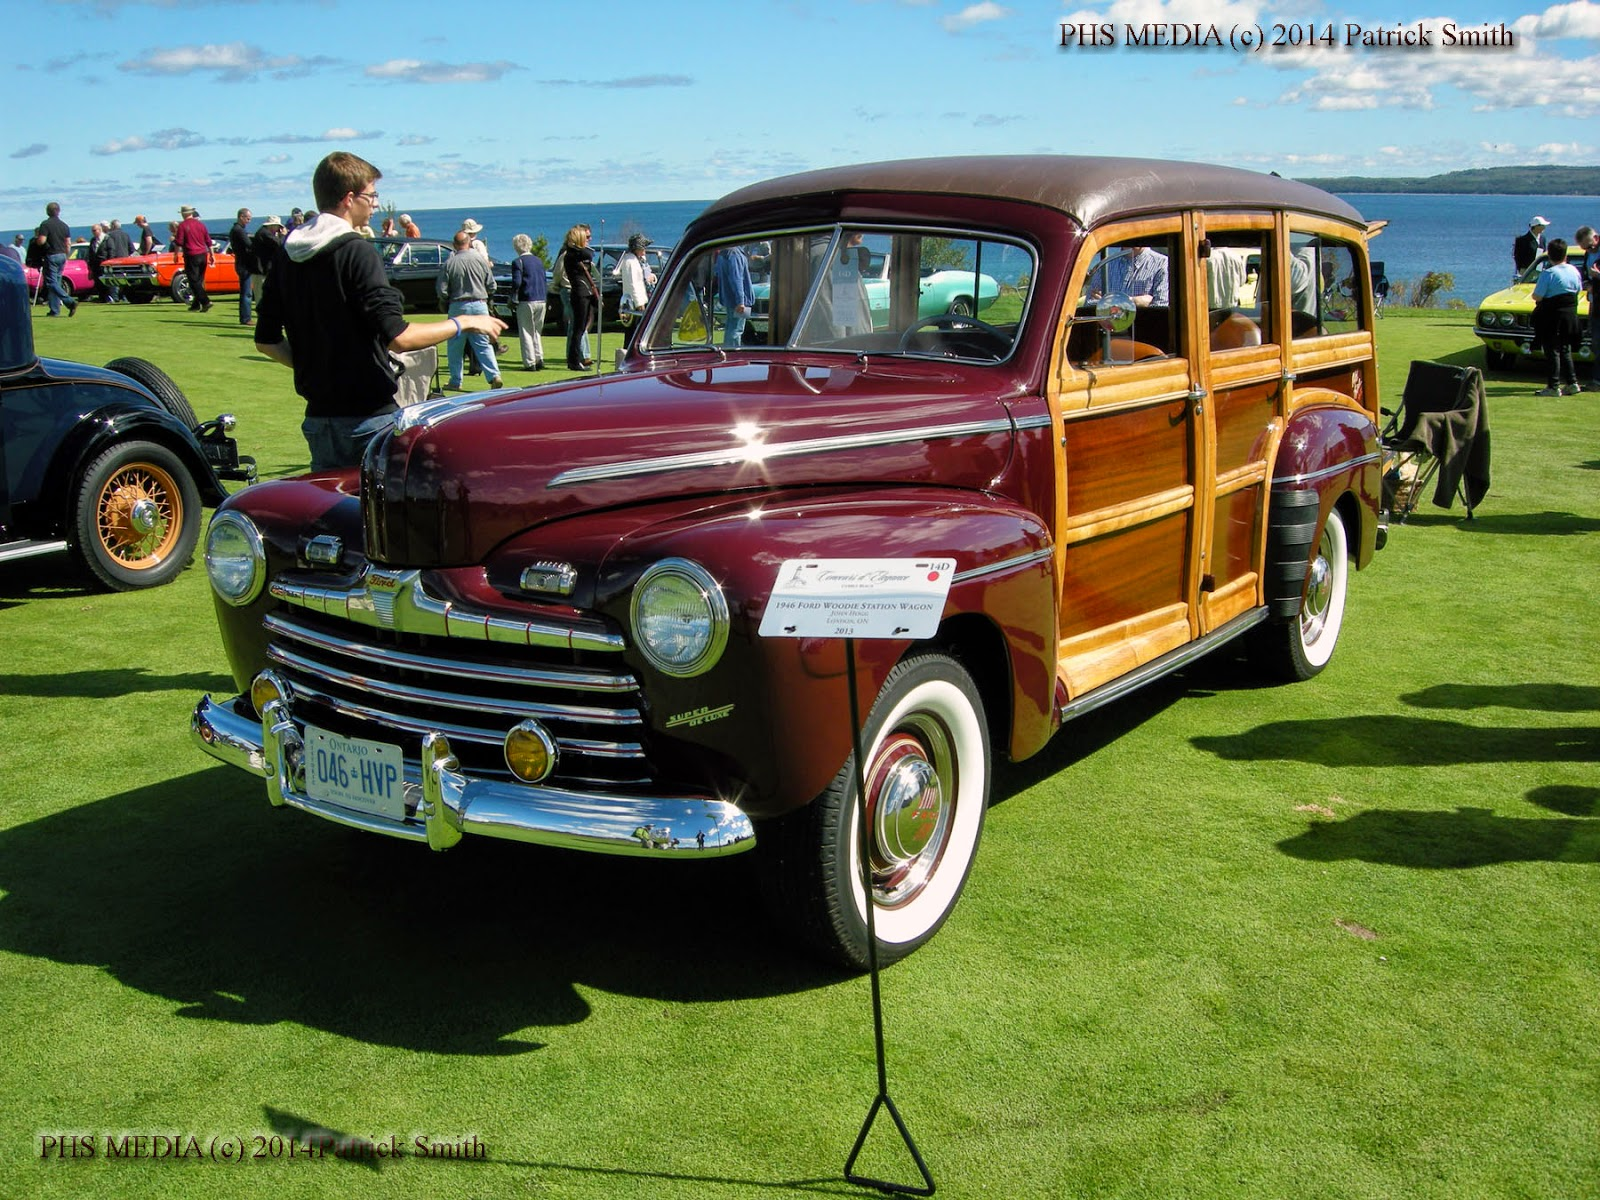 Phscollectorcarworld April 2014 Body Wiring Diagram For 1946 47 Chevrolet Dynamic Coupe Style 1007 This Marvelous Early Example Belongs To John Hogg Of London Ontario A Fresh Restoration It Appeared At The Cobble Beach Concours Delegance Last